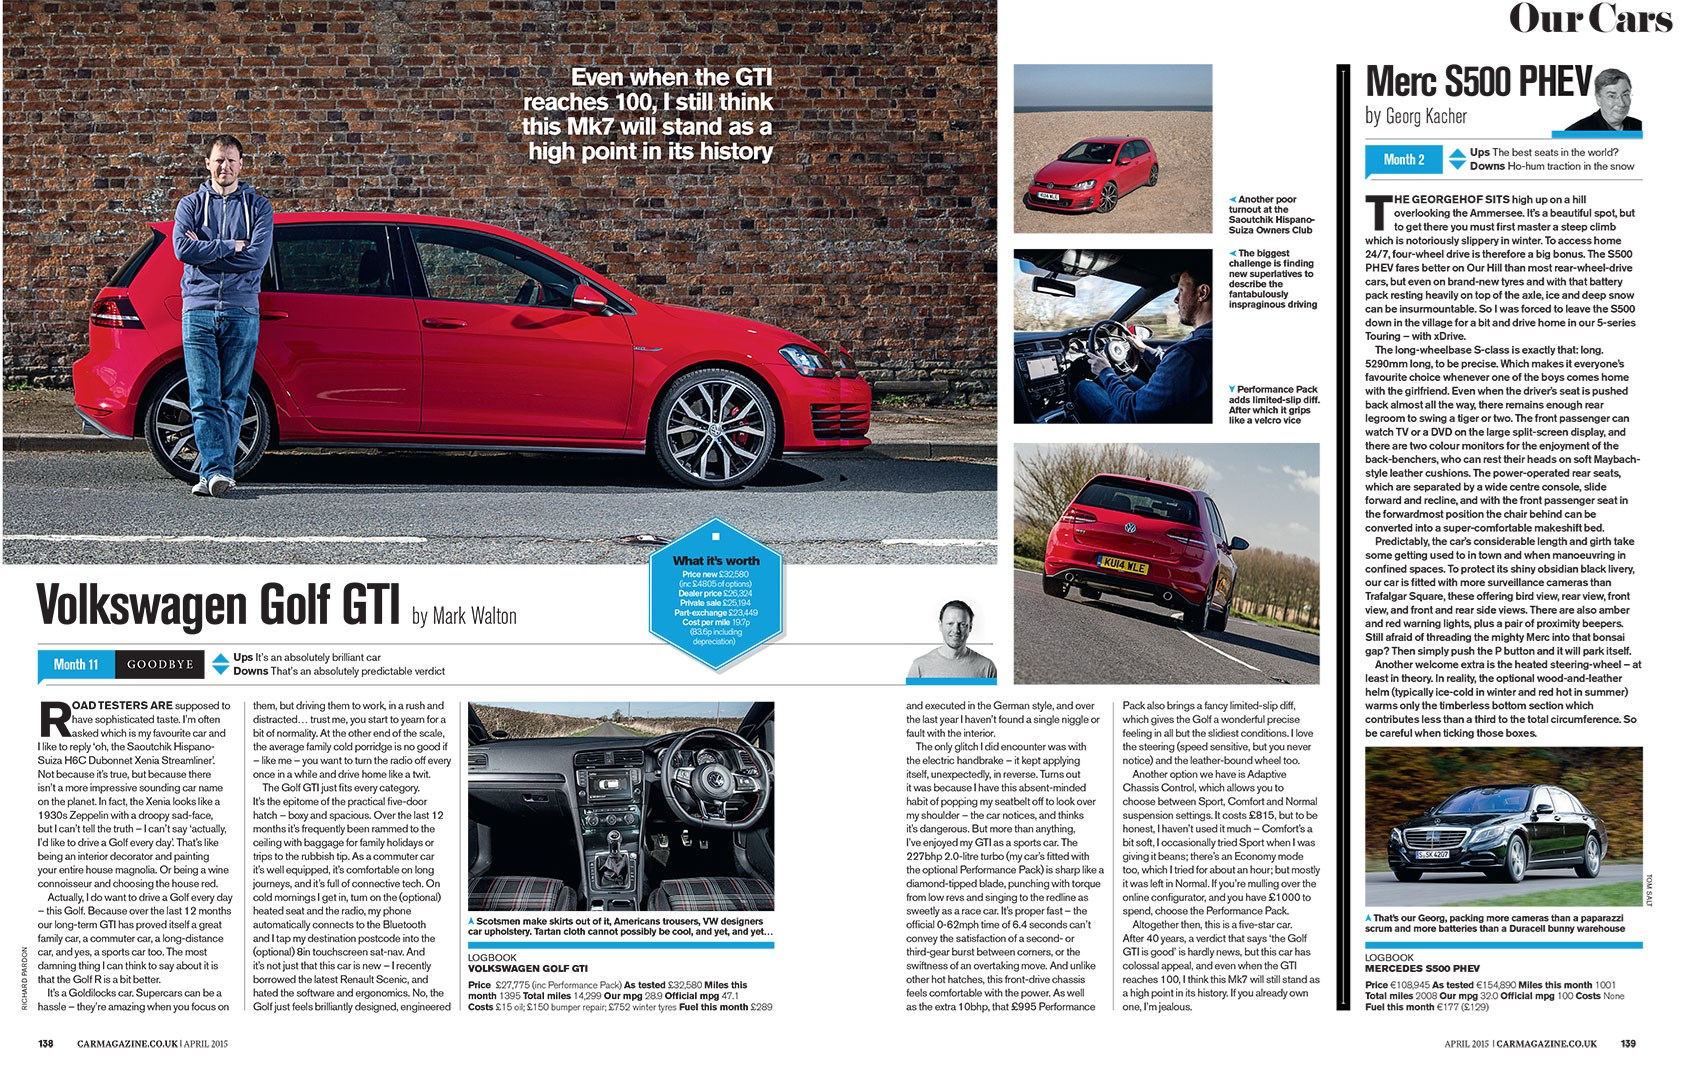 CAR magazine's Mark Walton is a big fan of the Mk7 VW Golf GTI